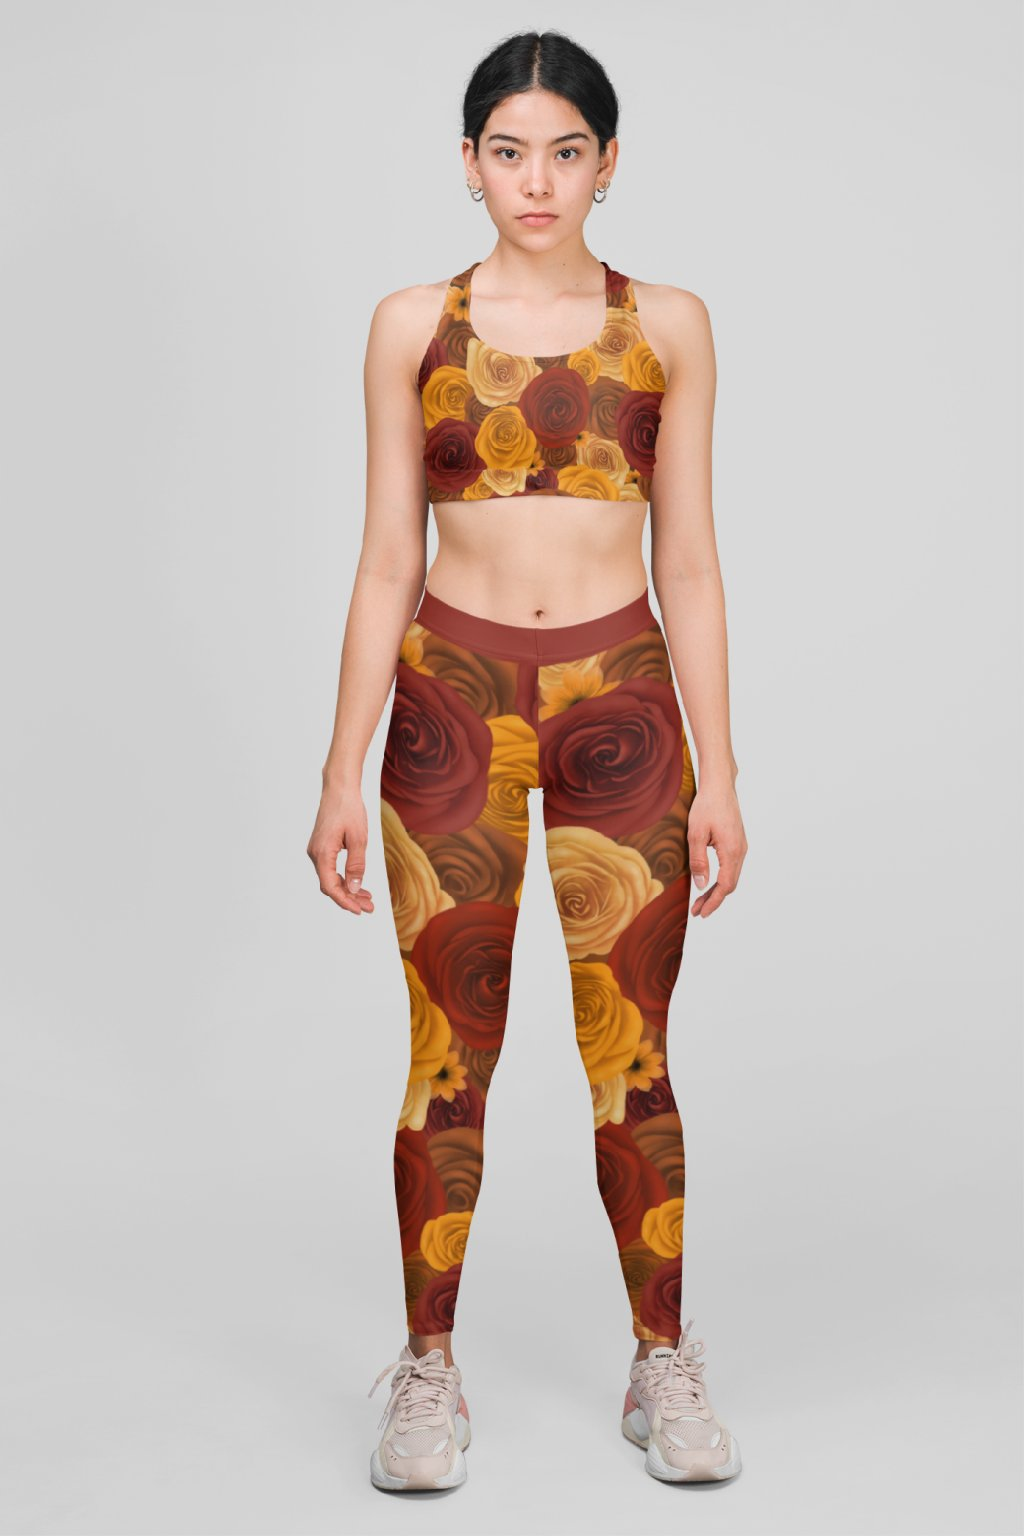 mockup featuring a woman wearing a sports bra and leggings at a studio 28720